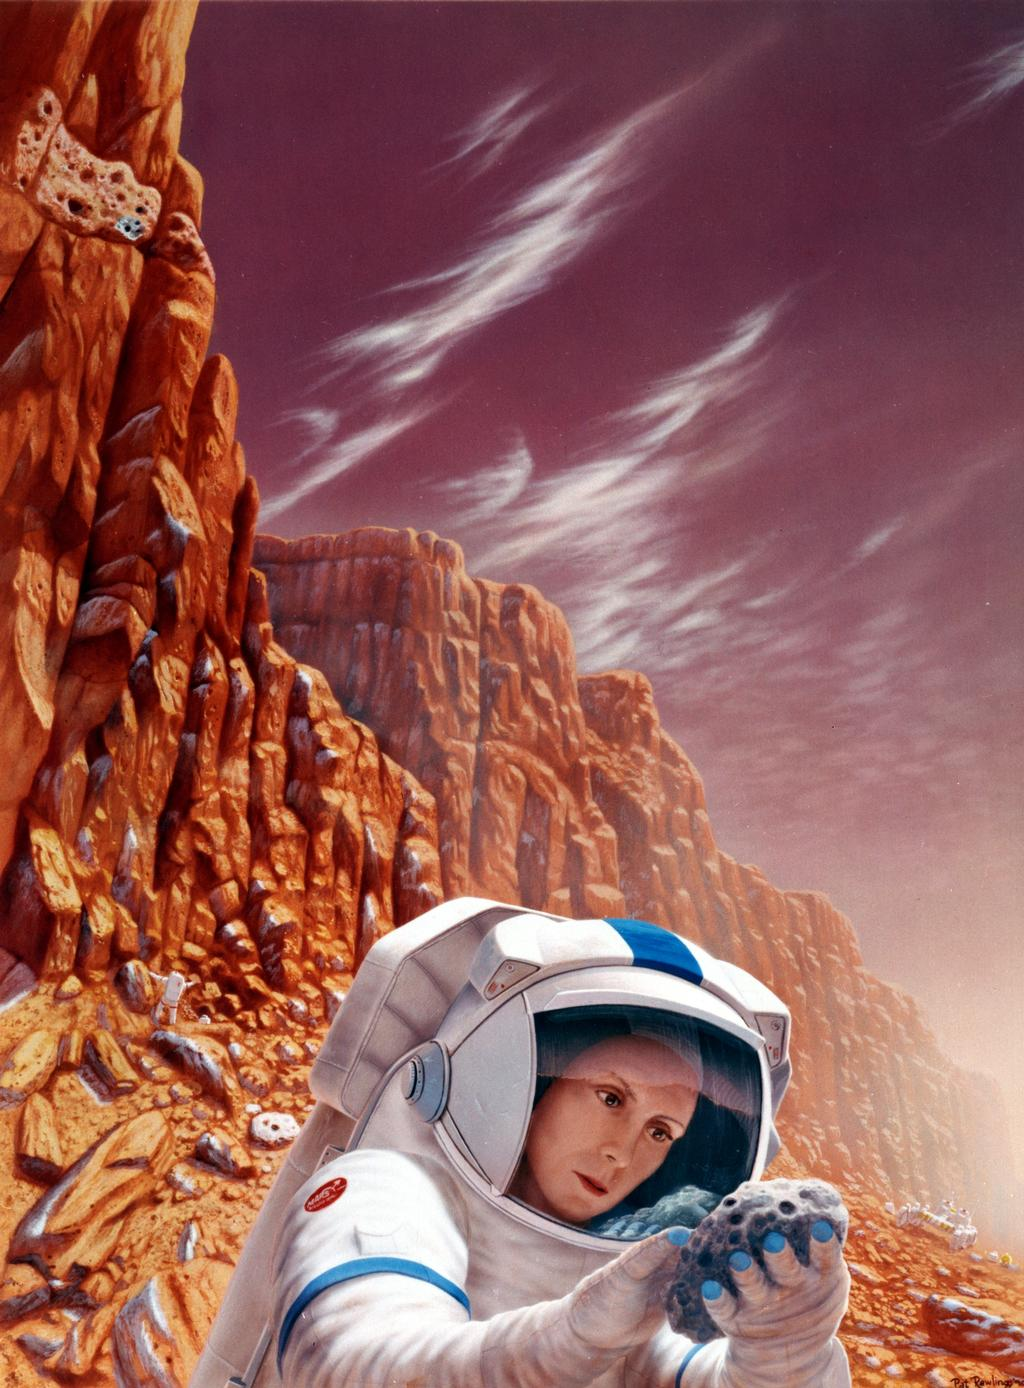 In this artist's concept, astronauts search for ancient microbial life on Mars.